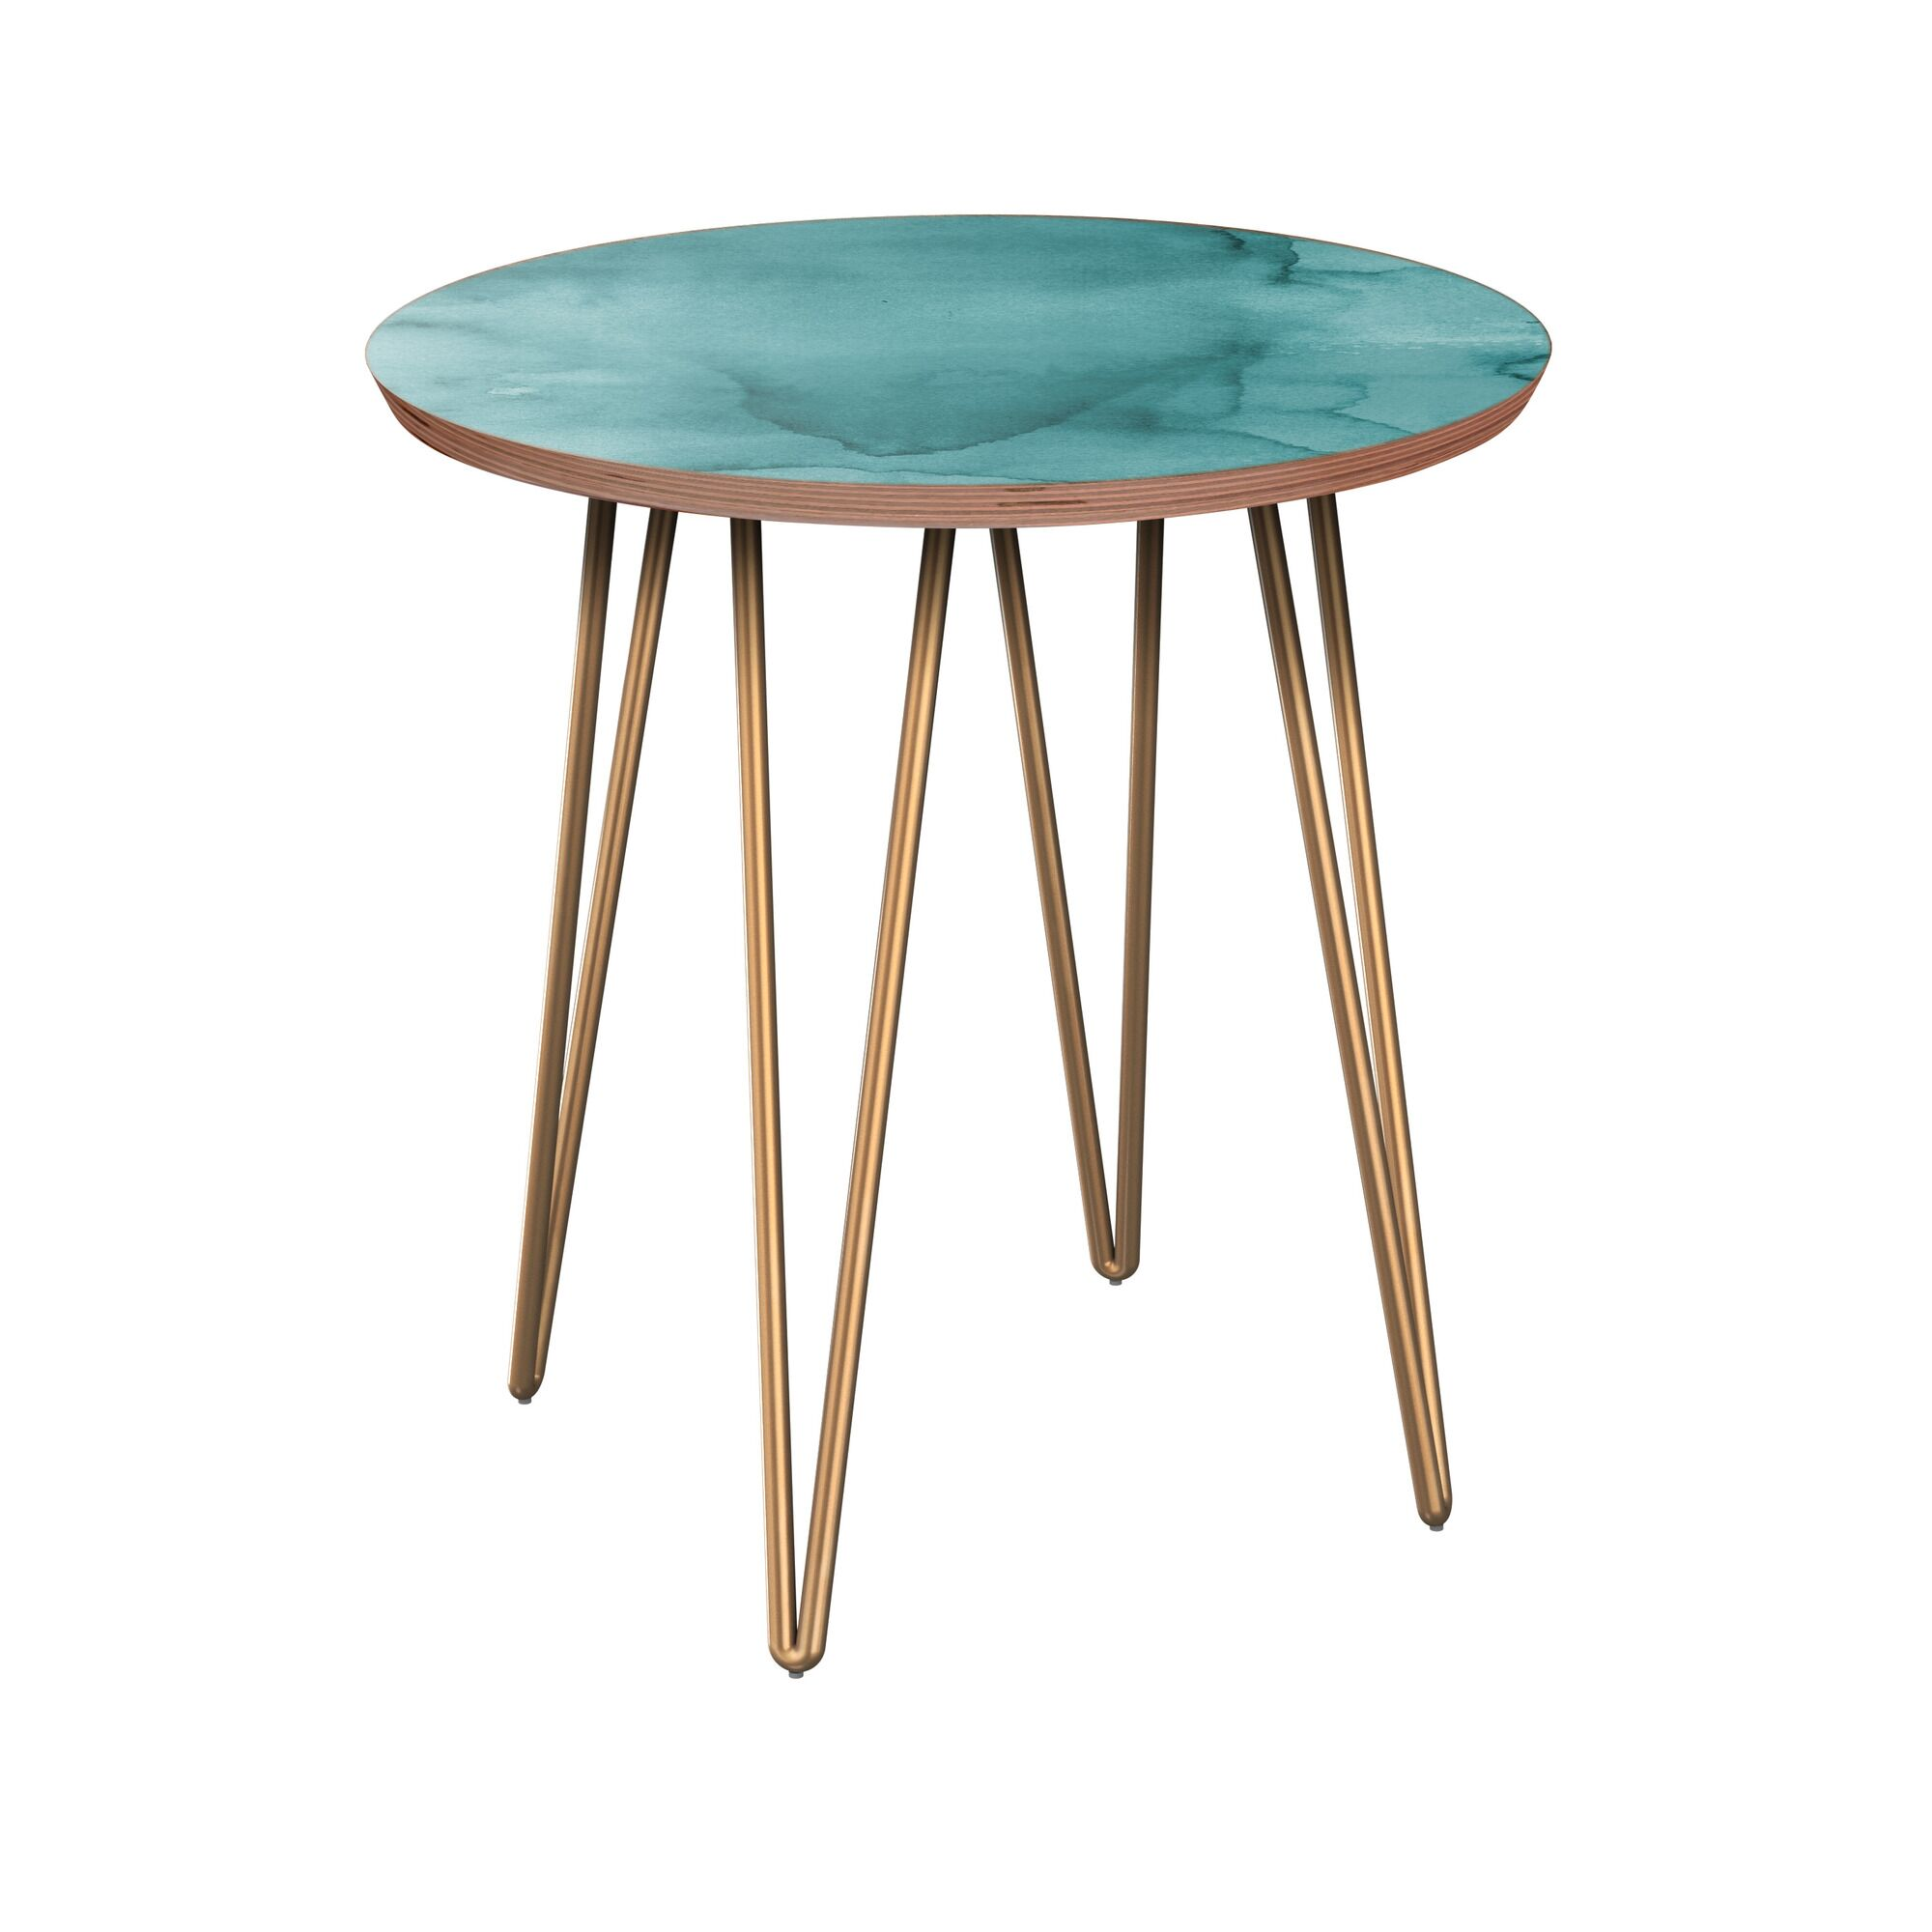 Raskin End Table Table Base Color: Brass, Table Top Boarder Color: Walnut, Table Top Color: Turquoise